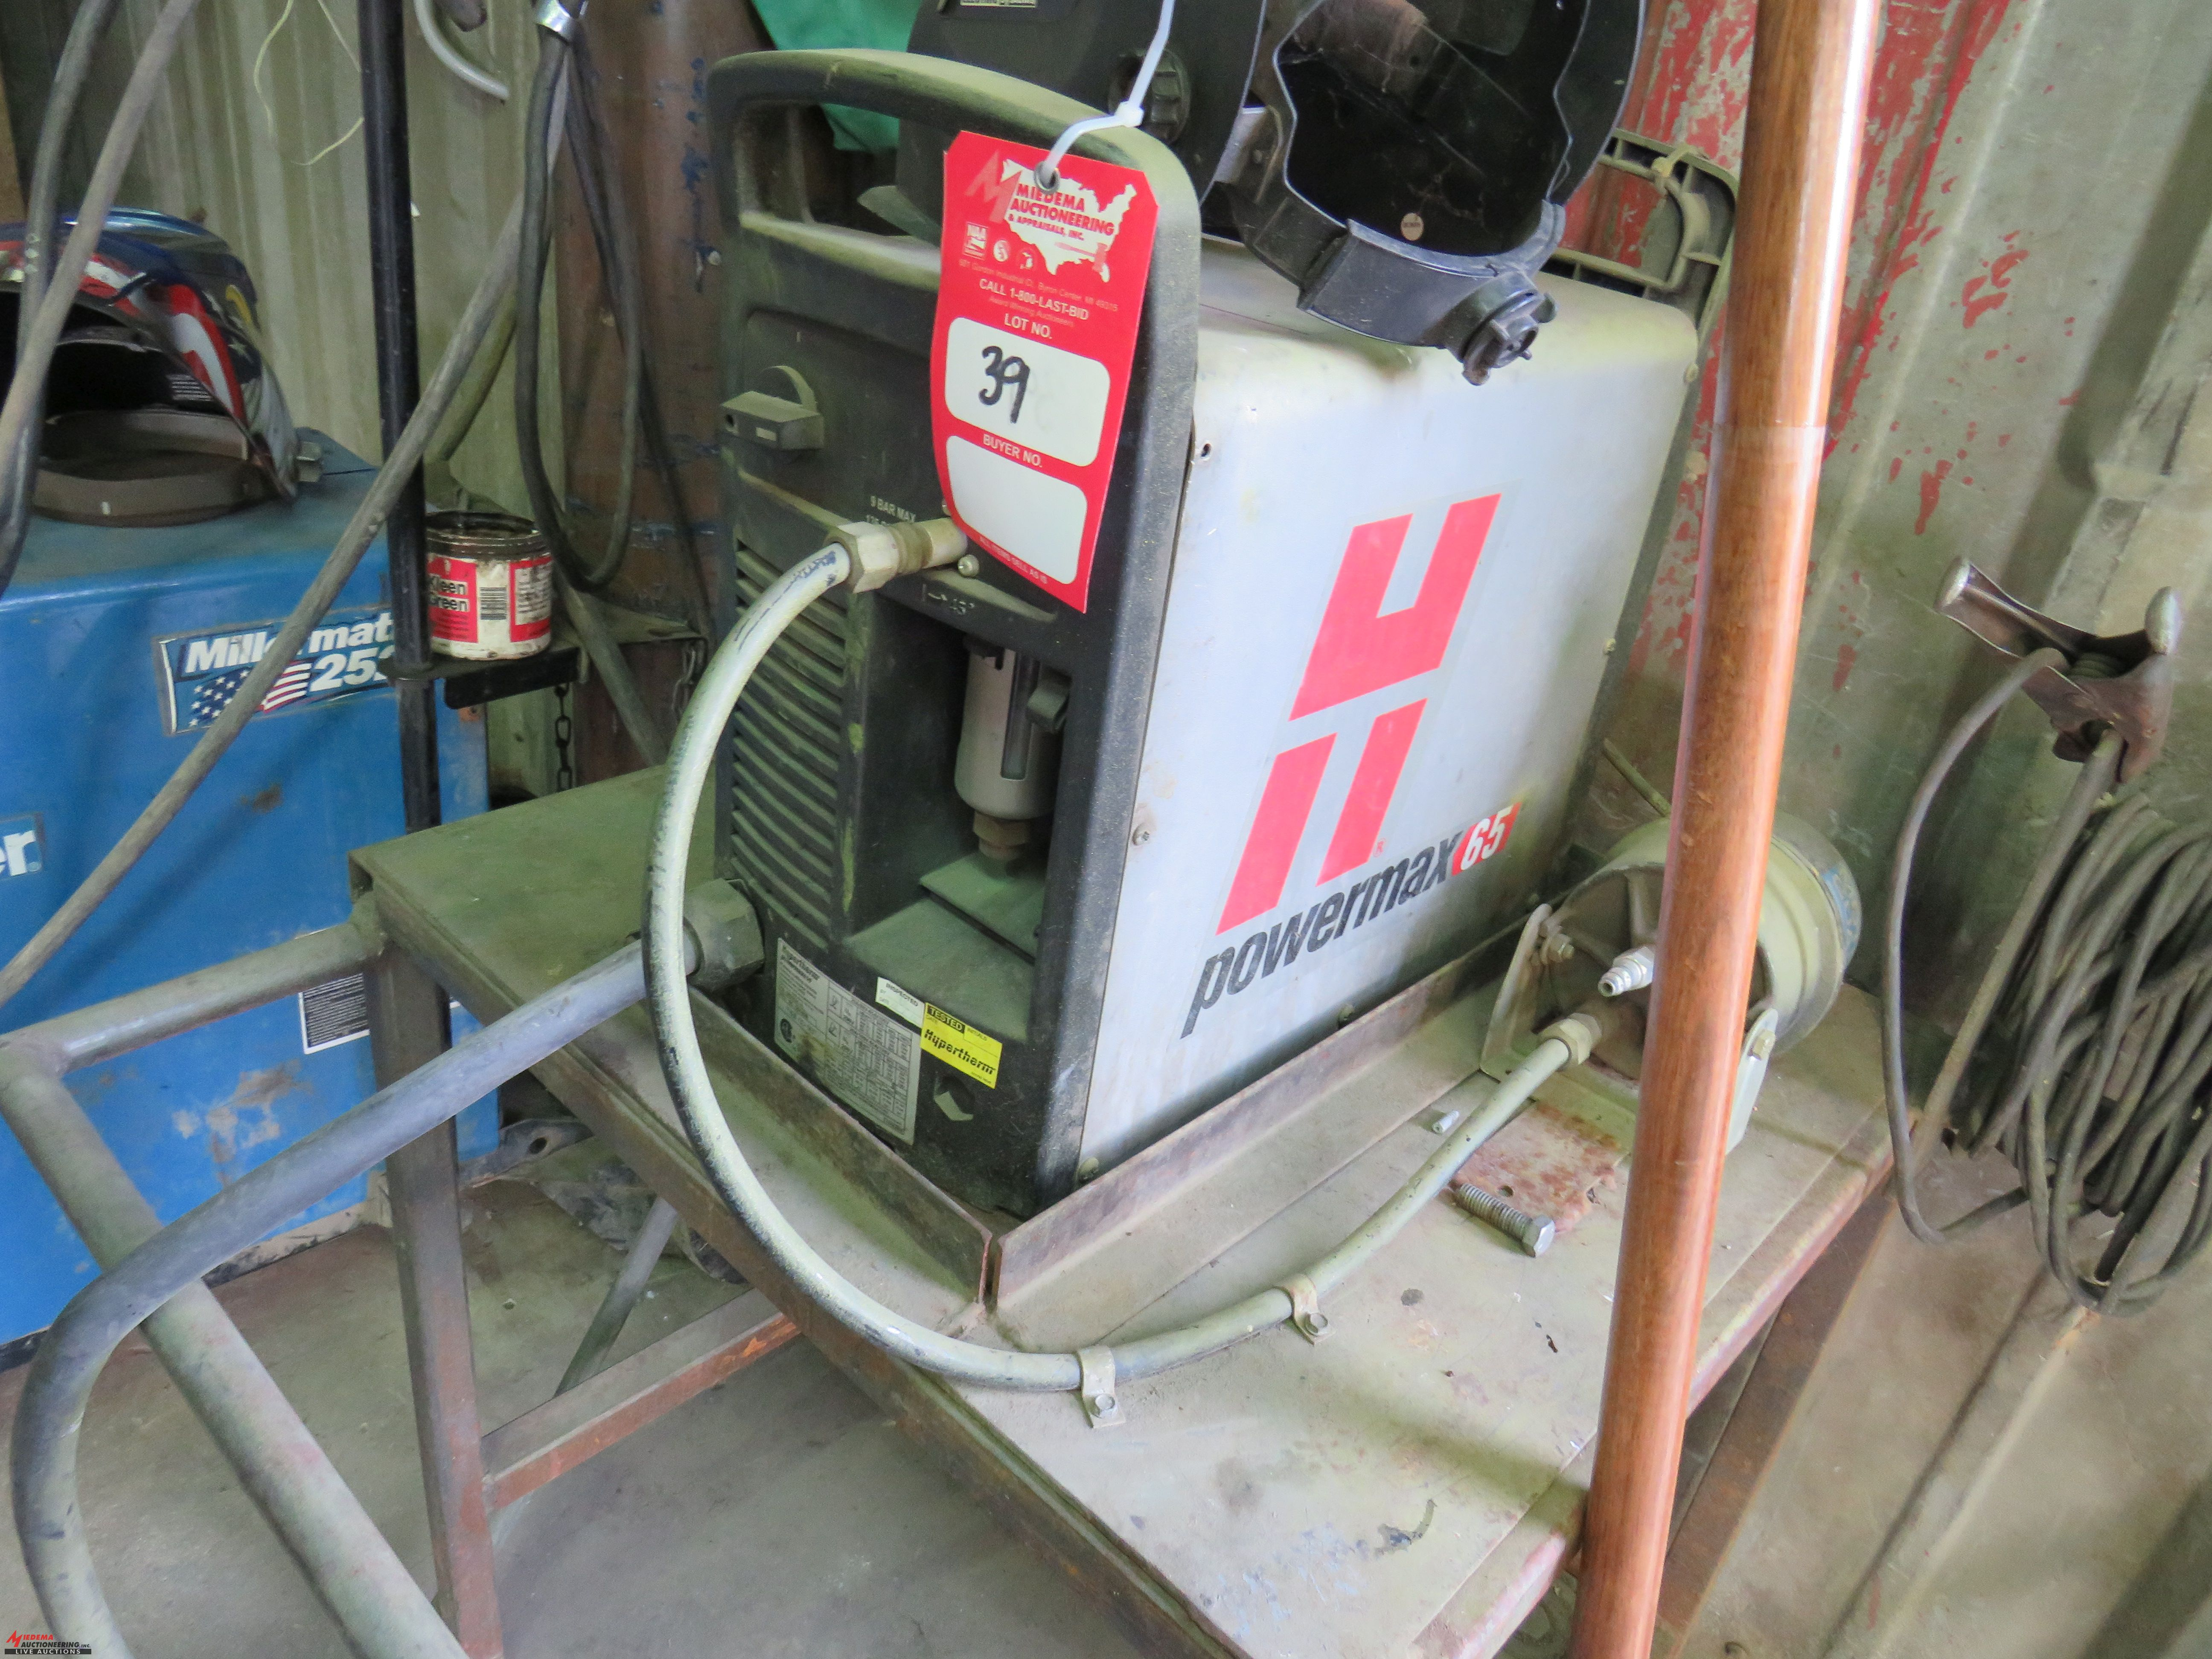 Lot 39 - HYPERTHERM POWERMAX 65 PLASMA CUTTER, WITH METAL STAND